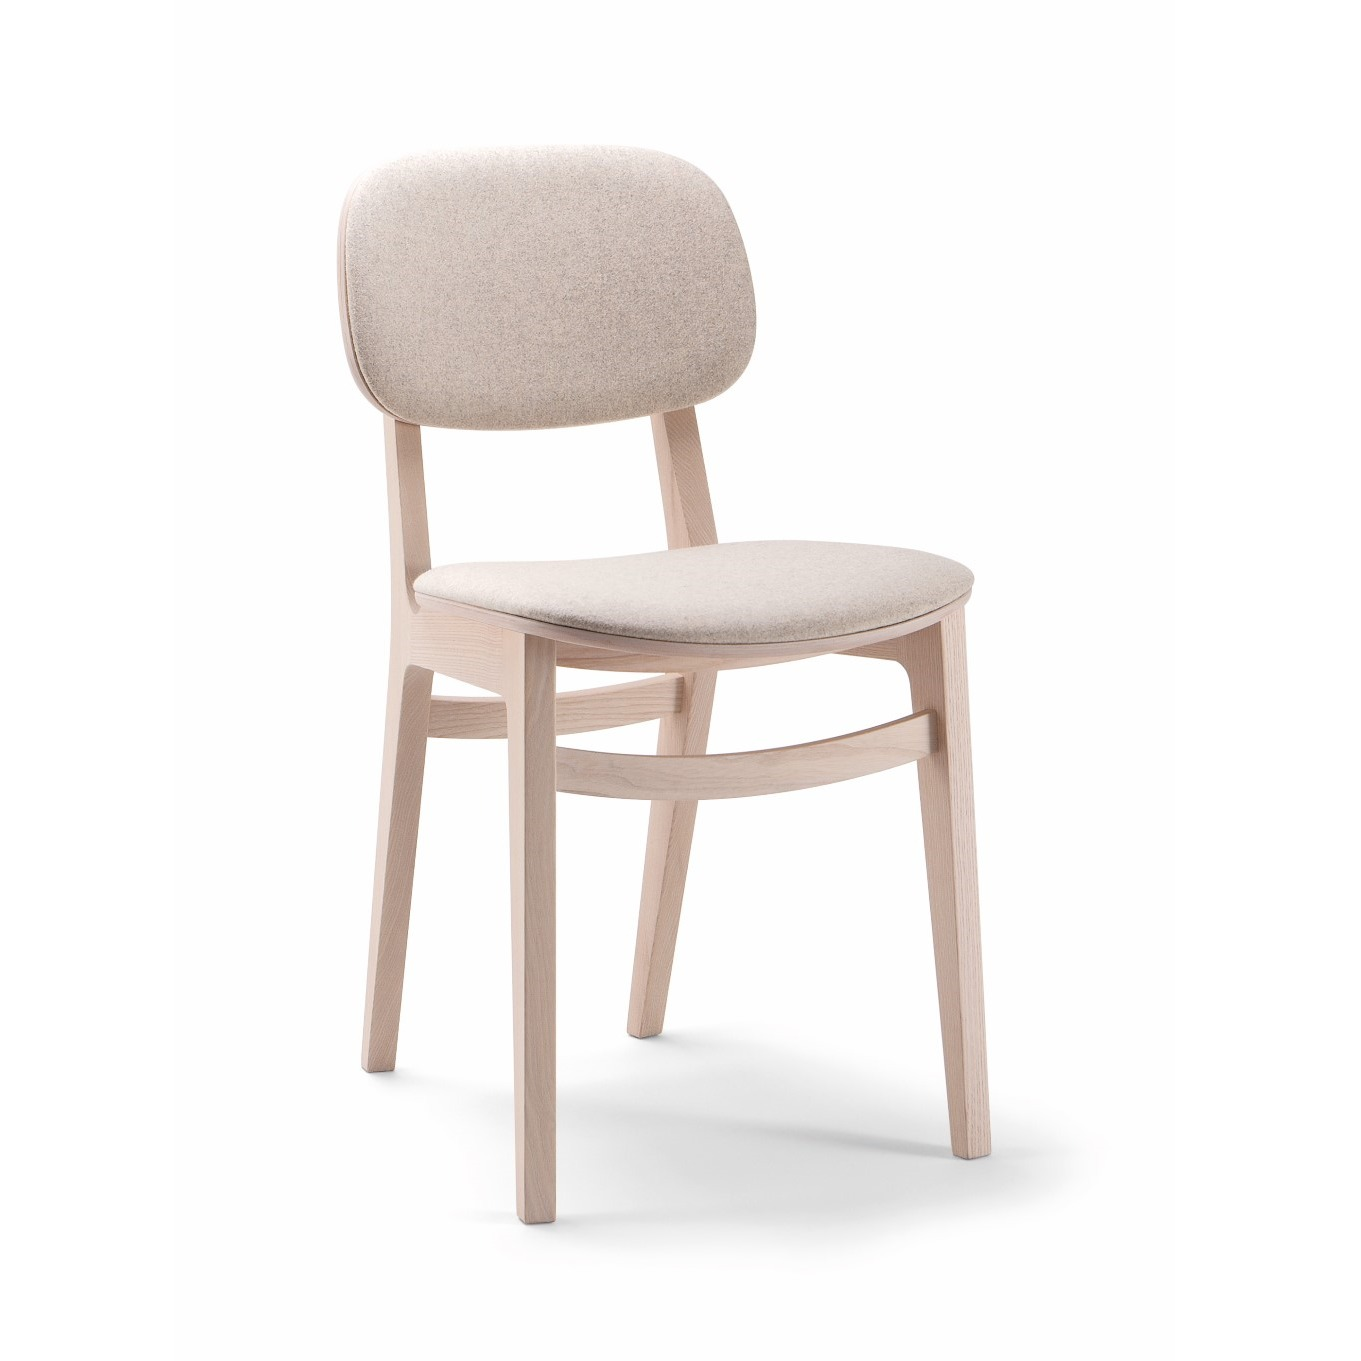 Verge Chair – Uph Seat & Back